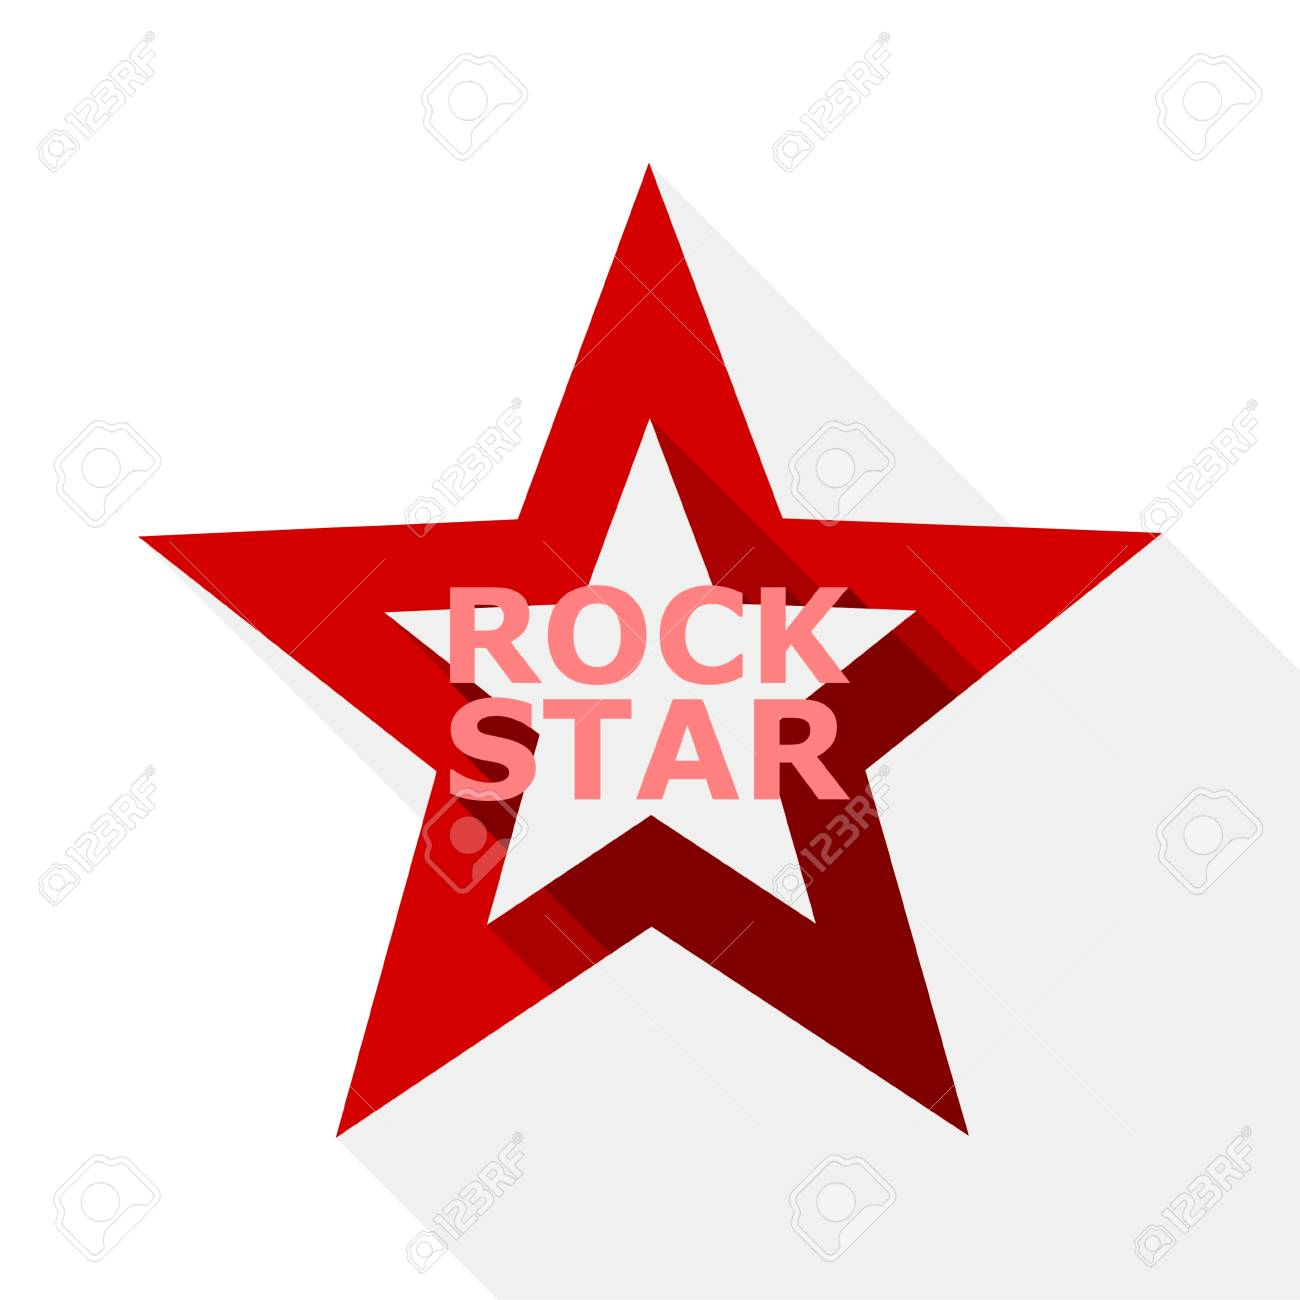 Rock Star Design Icon With Long Shadow Royalty Free Cliparts